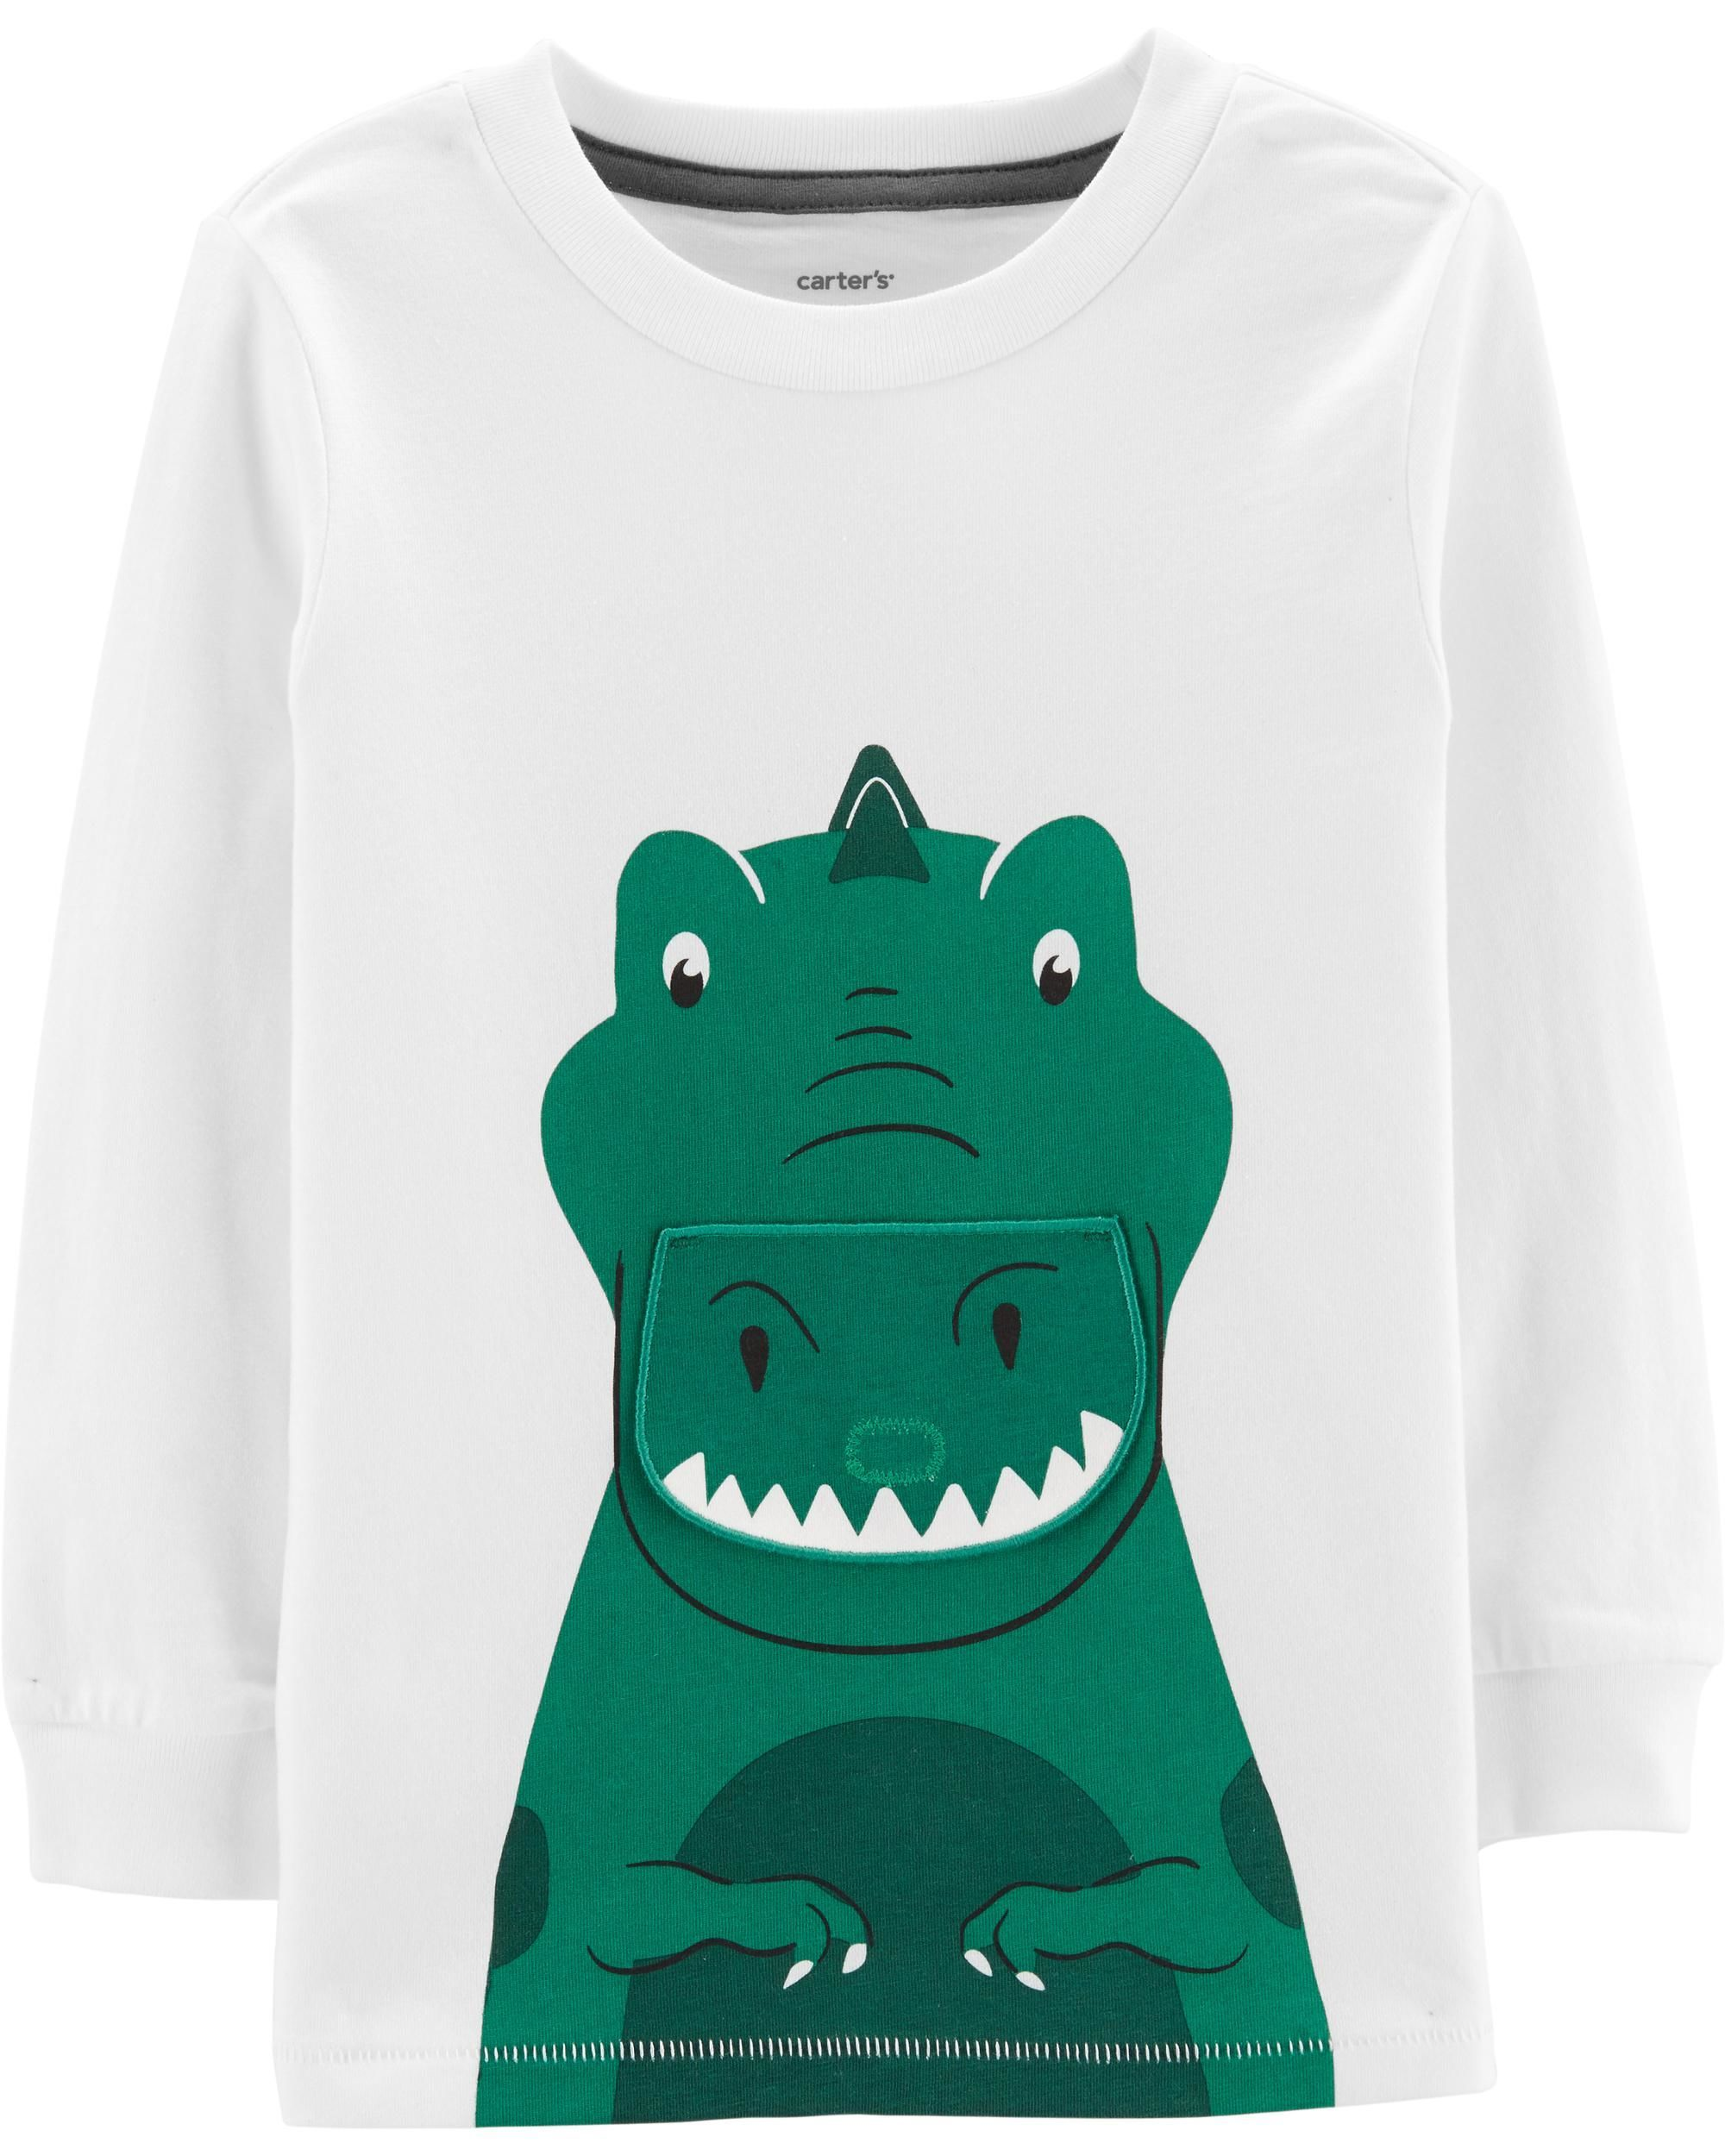 Dinosaur PeekABoo Flap Tee is part of Baby Clothes Dinosaur -  Dinosaur PeekABoo Flap Tee from Carters com  Shop clothing & accessories from a trusted name in kids, toddlers, and baby clothes